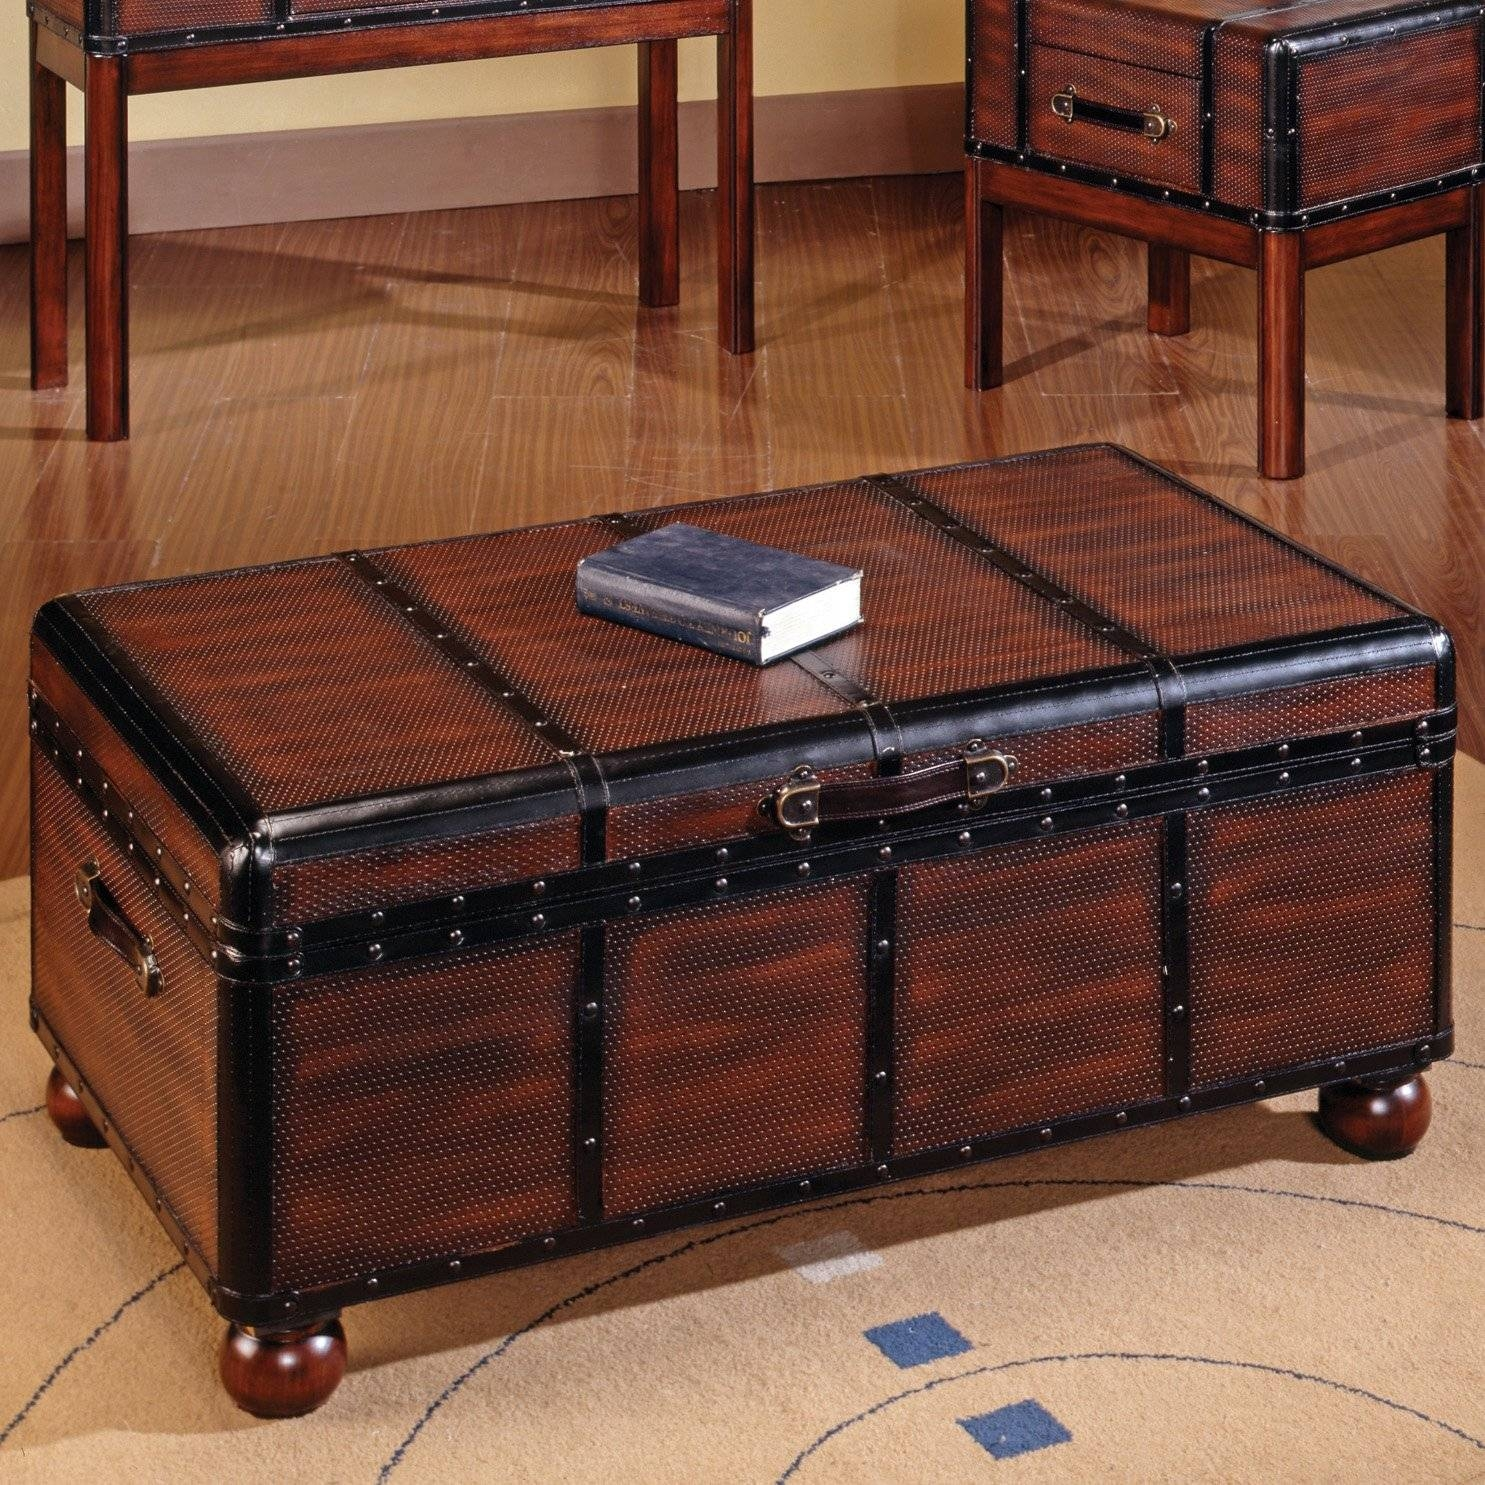 Storage Wood Trunk Coffee Table Wooden Trunks Coffee Tables Chest in Trunks Coffee Tables (Image 27 of 30)